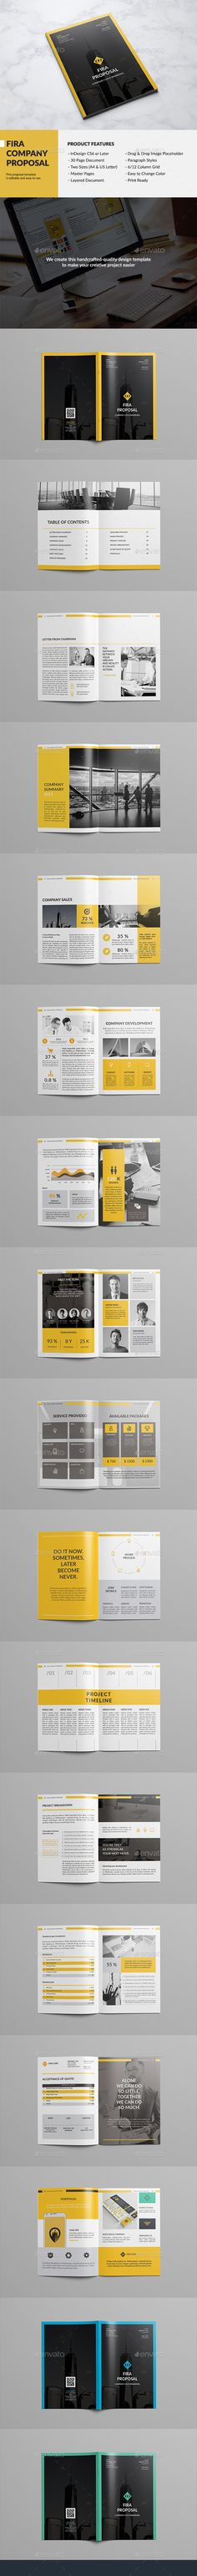 Fira Company Proposal Template InDesign INDD. Download here…